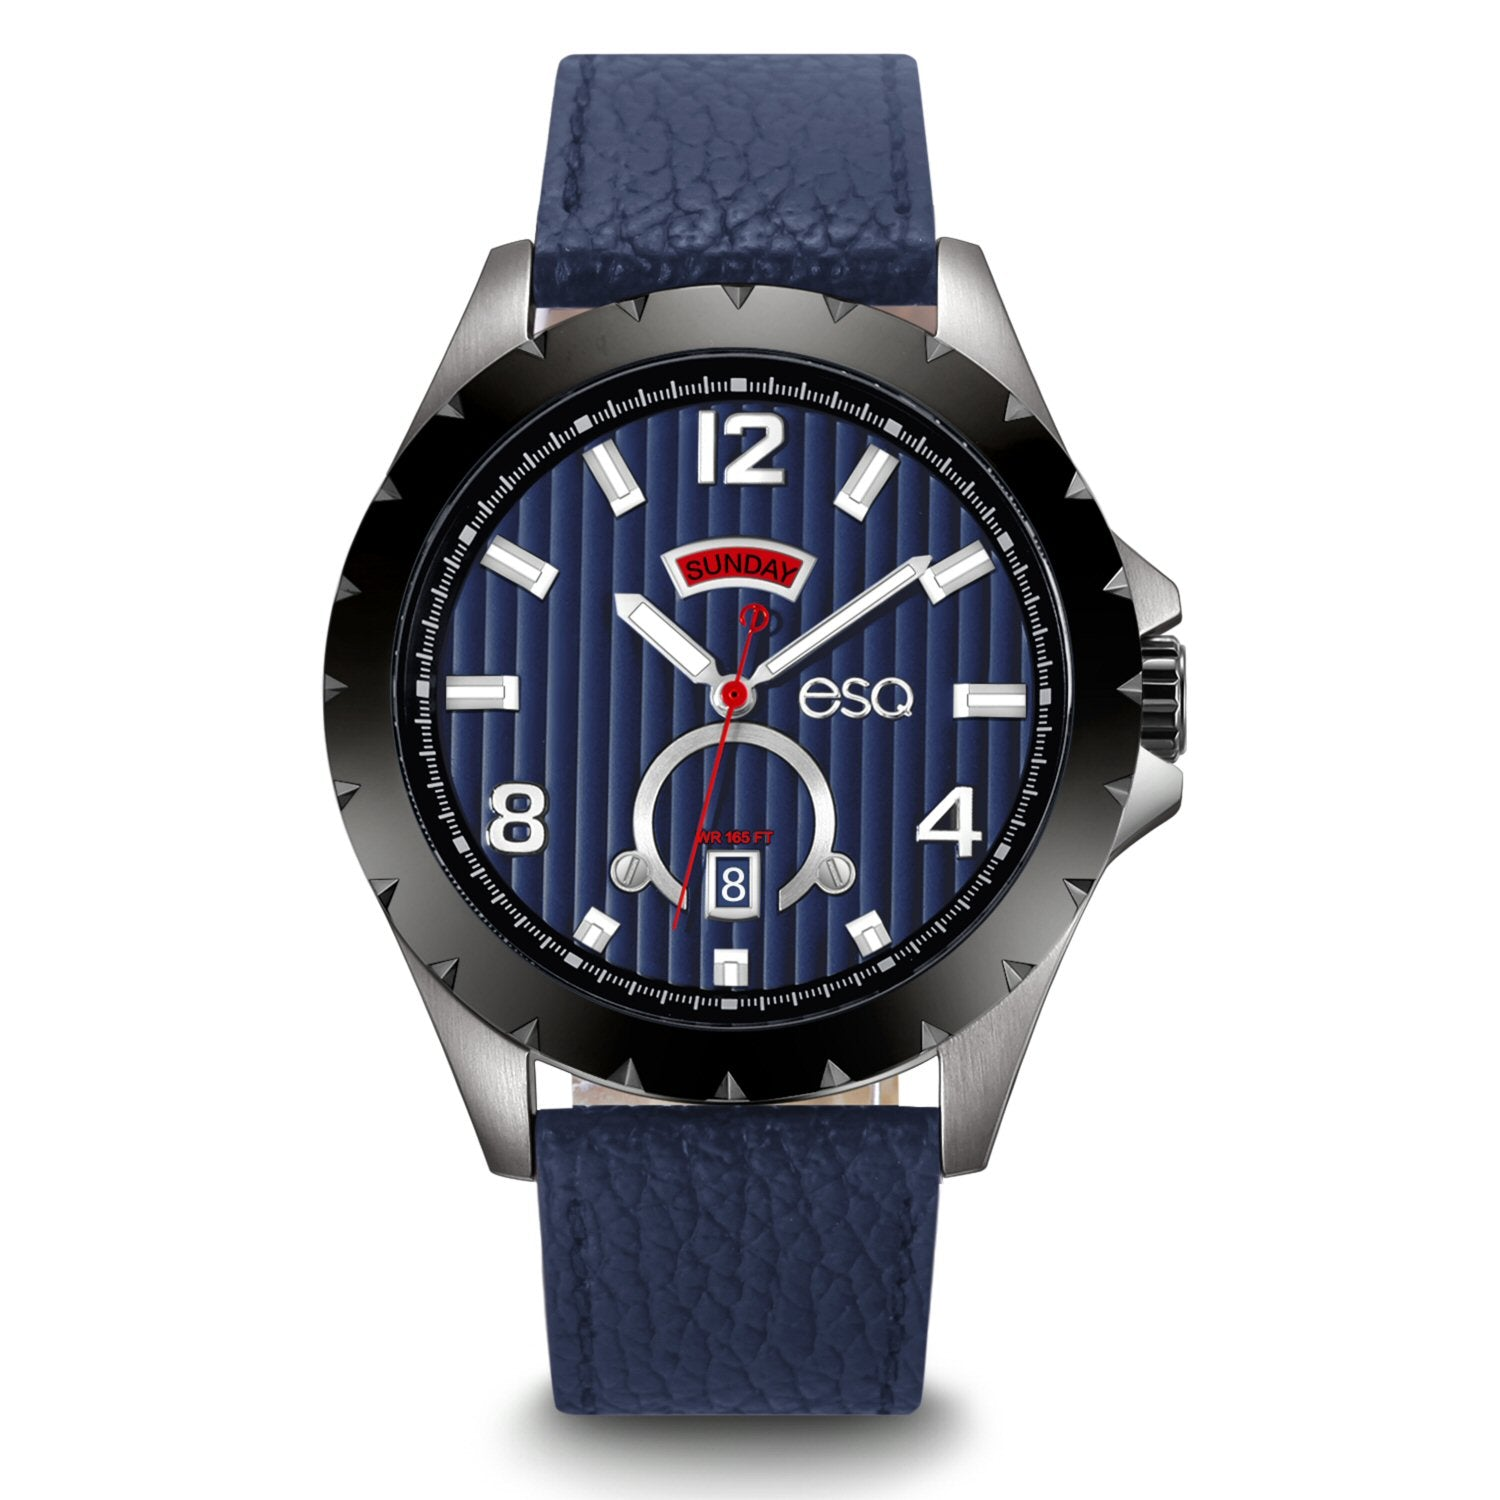 Men's ESQ0071 Stainless Steel 3-Hand Day/Date Watch with Textured Blue Dial and Genuine Leather Strap